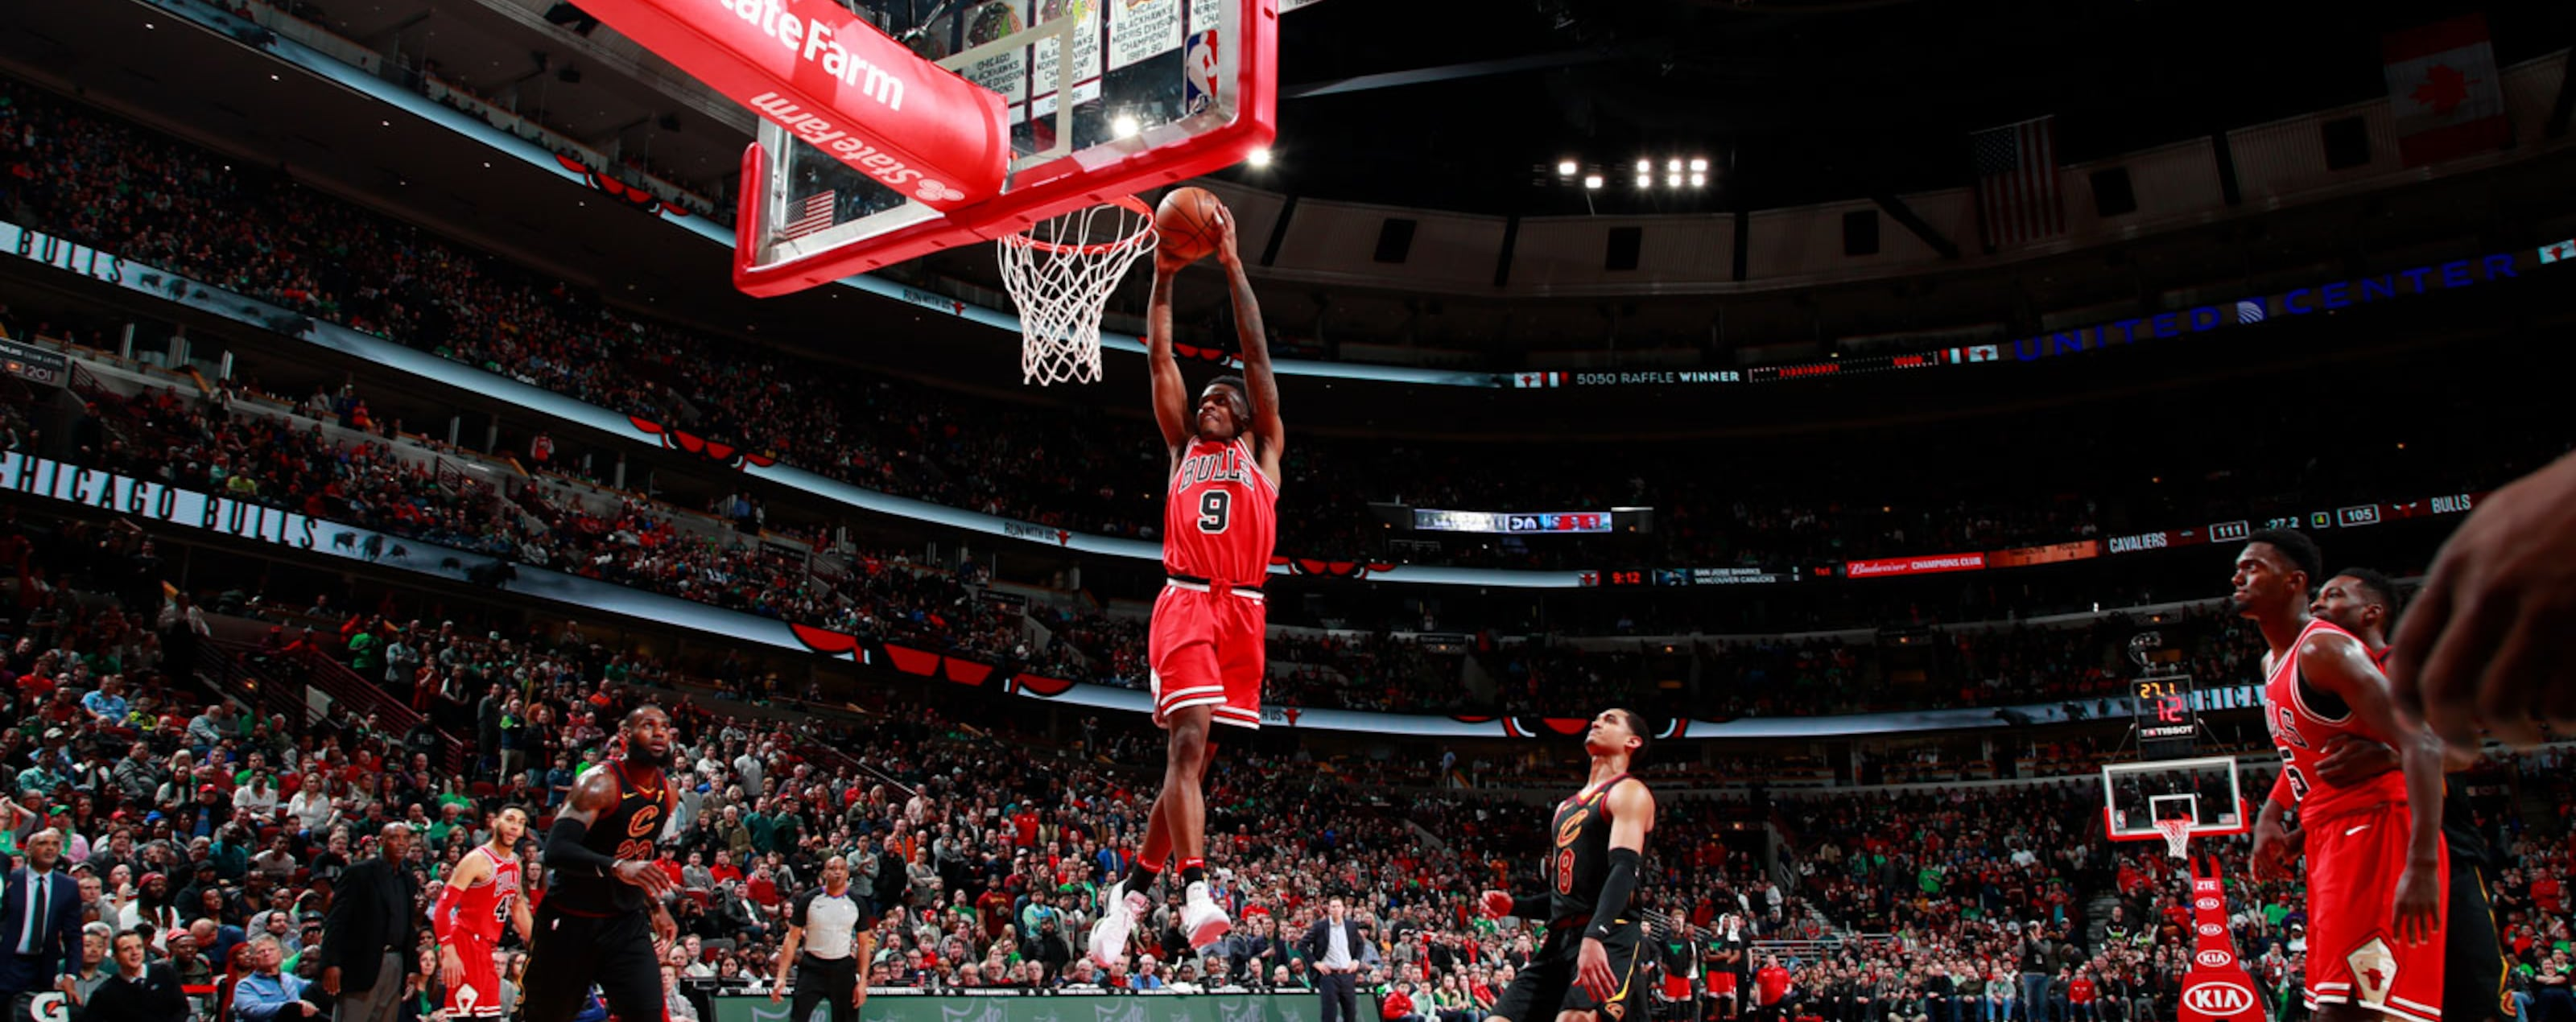 Antonio Blakeney #9 of the Chicago Bulls dunks the ball against the Cleveland Cavaliers on March 17, 2018 at the United Center in Chicago, Illinois.